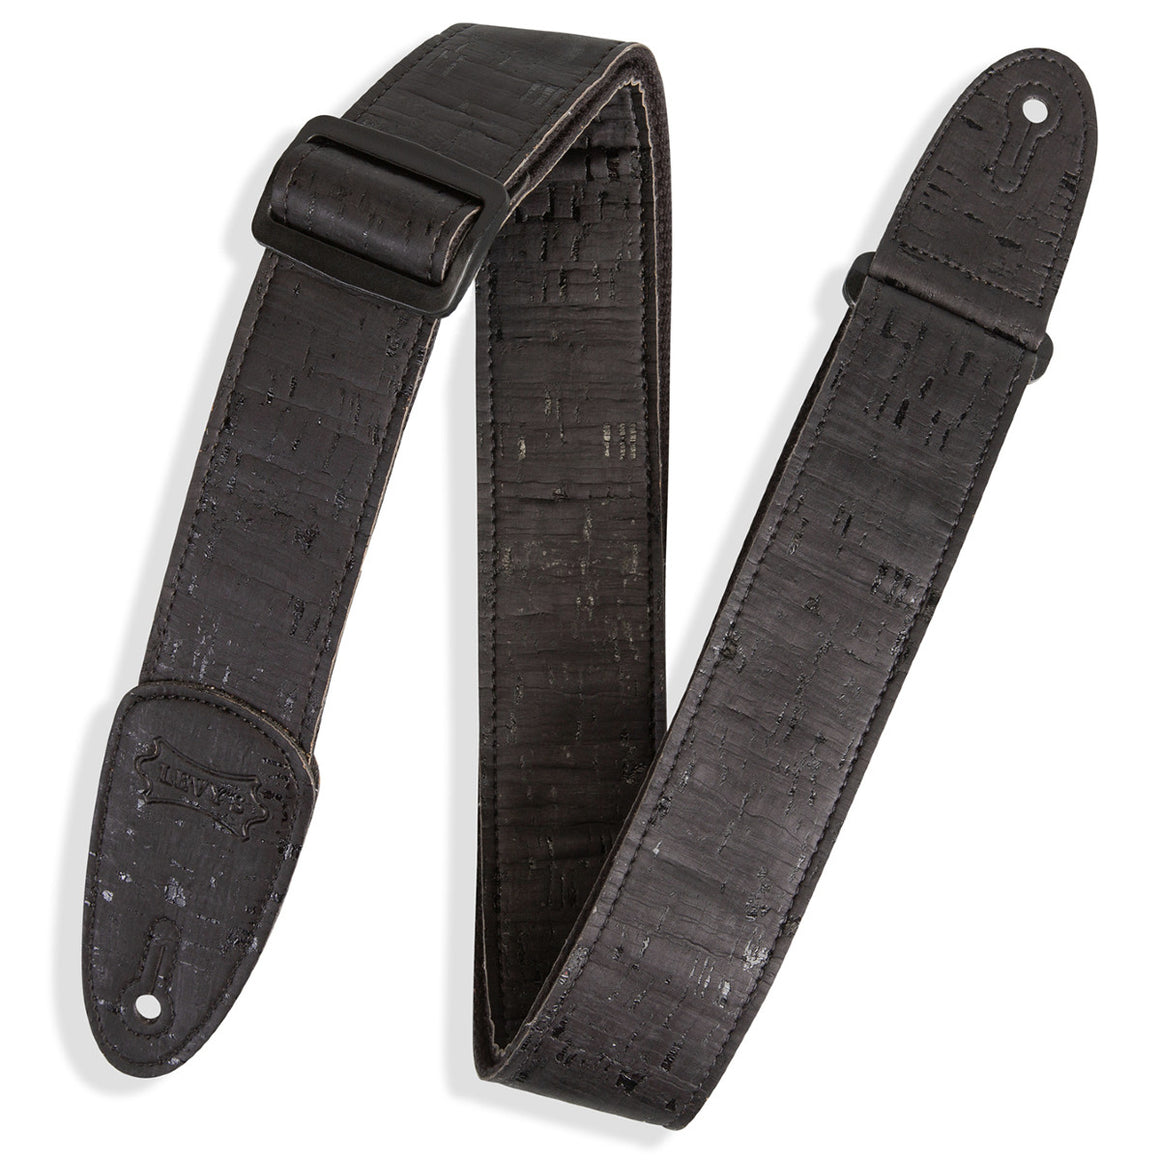 Levy's MX8-BLK Vegan Cork Guitar Strap